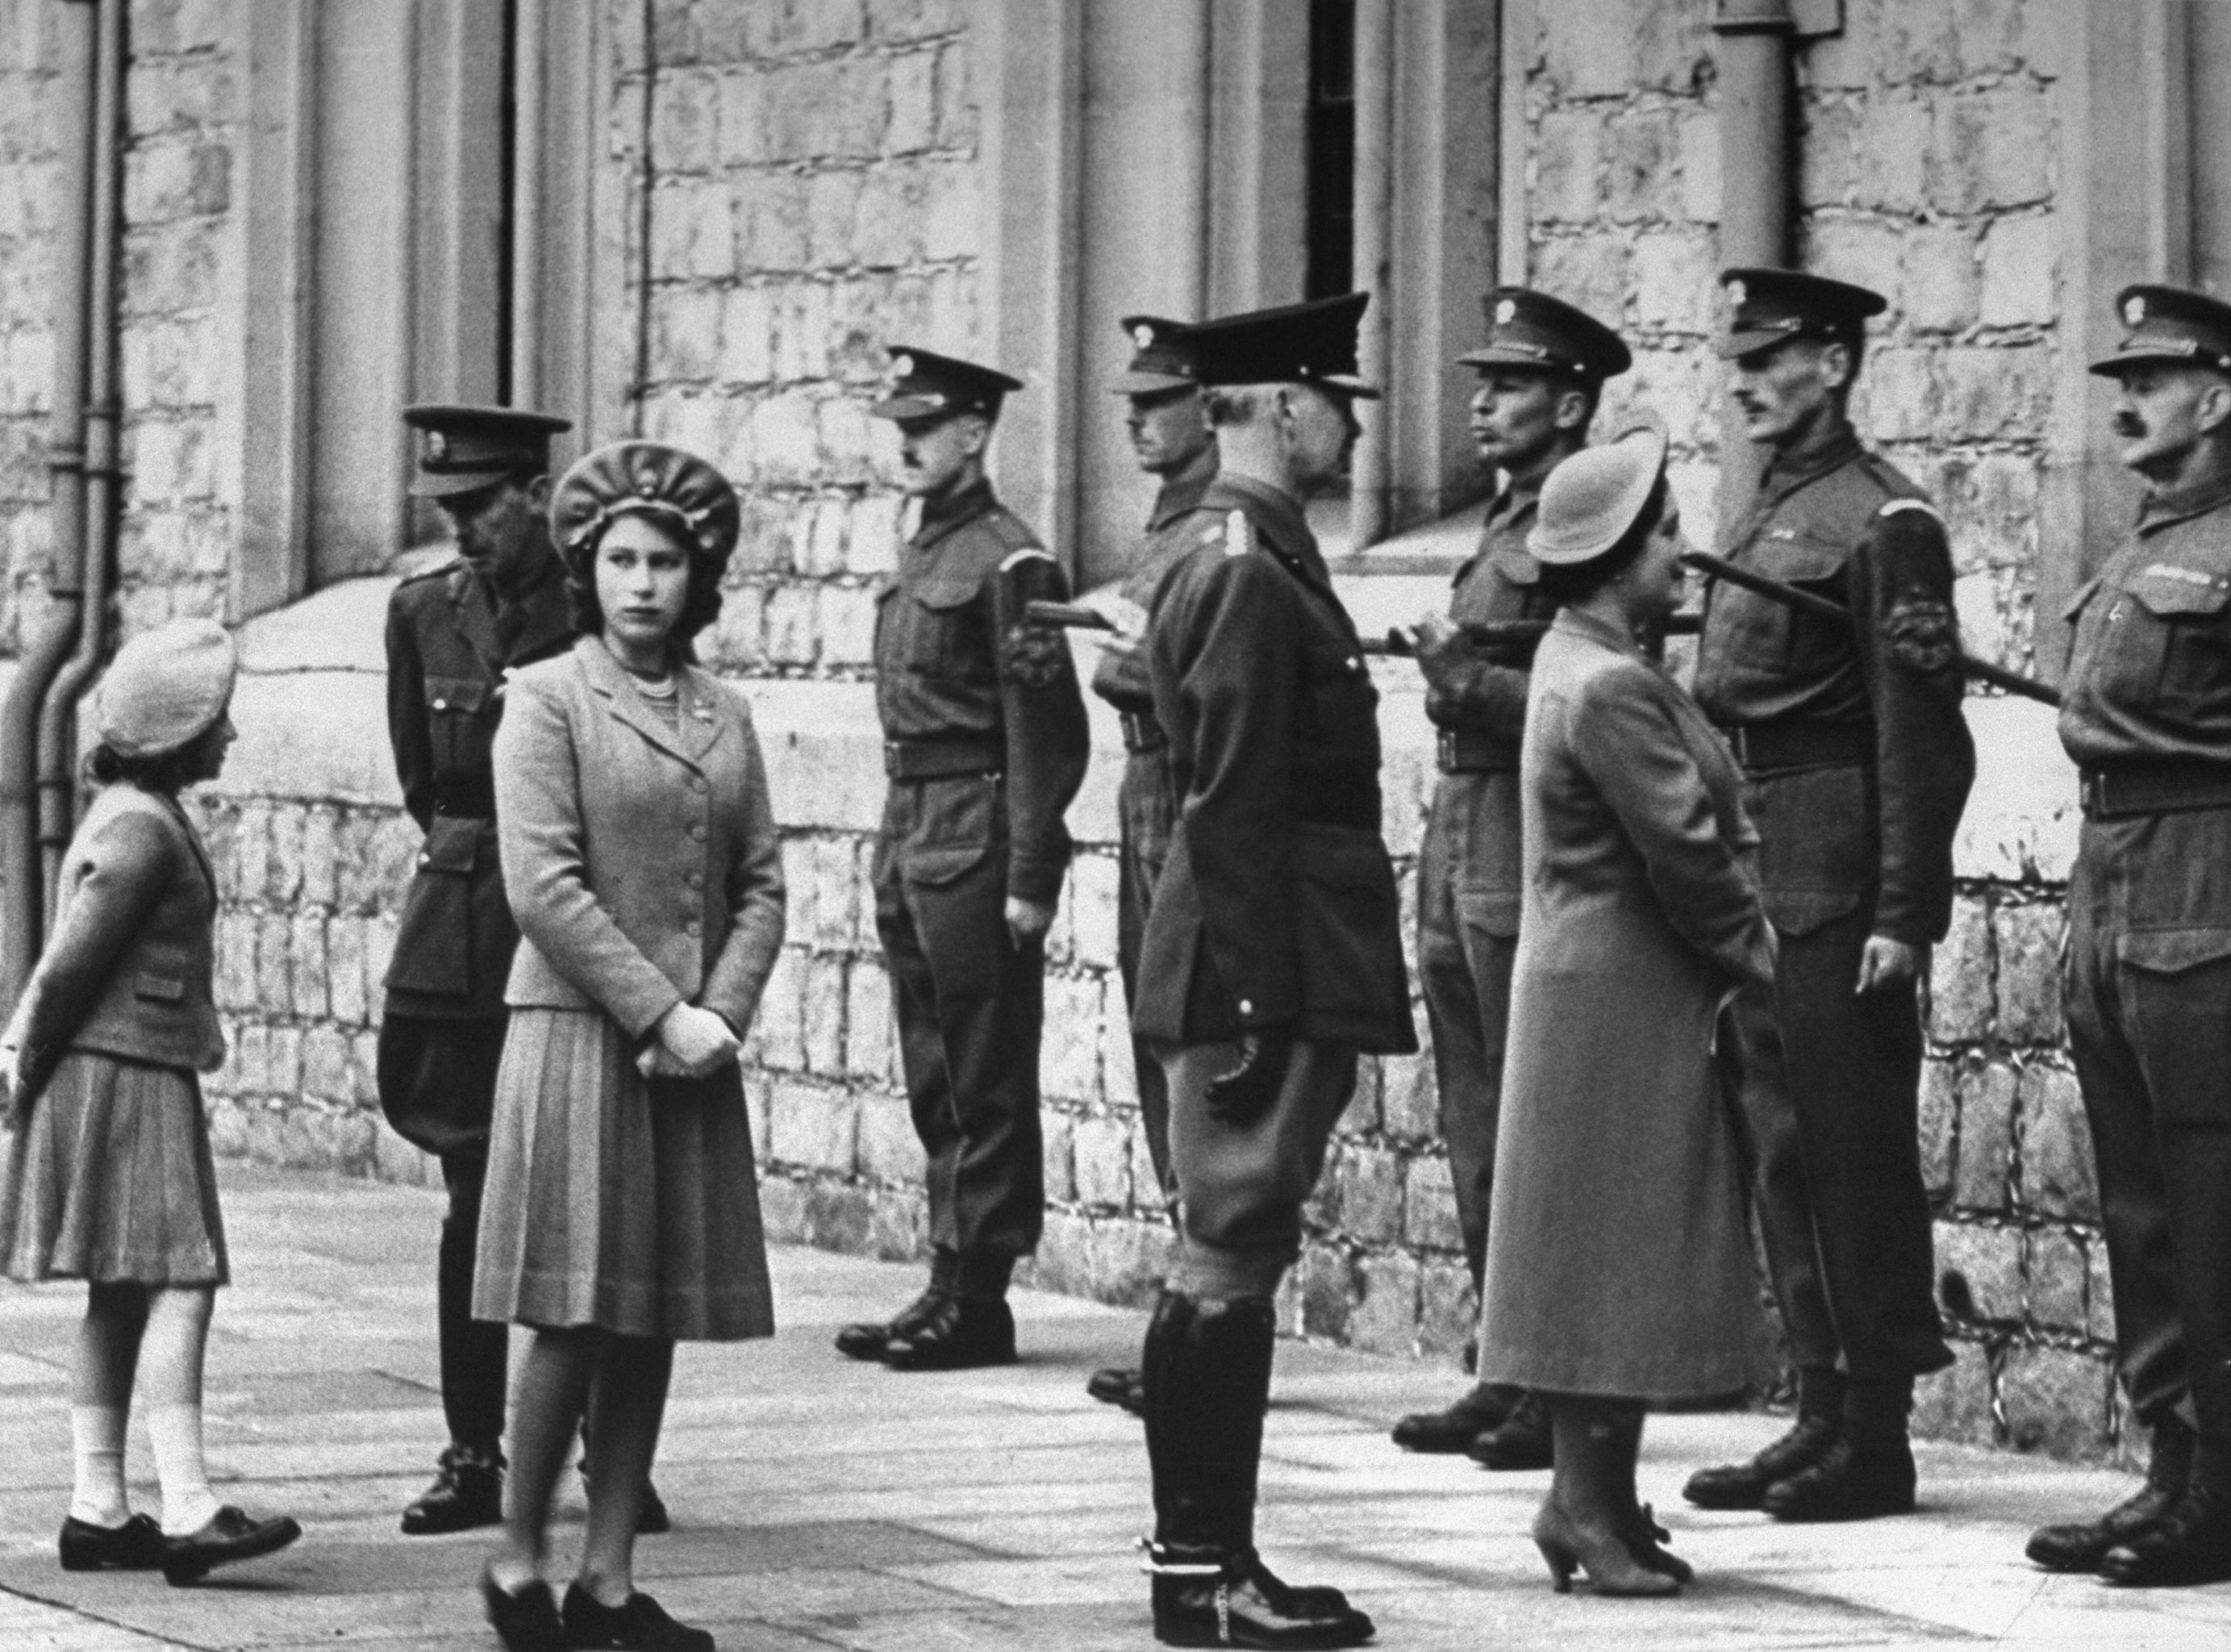 Princess Margaret (left), the future Queen Elizabeth II (third from left) and the Queen Mother (third from right) with the Grenadier guards on the occasion of Princess Elizabeth's birthday, 1942.